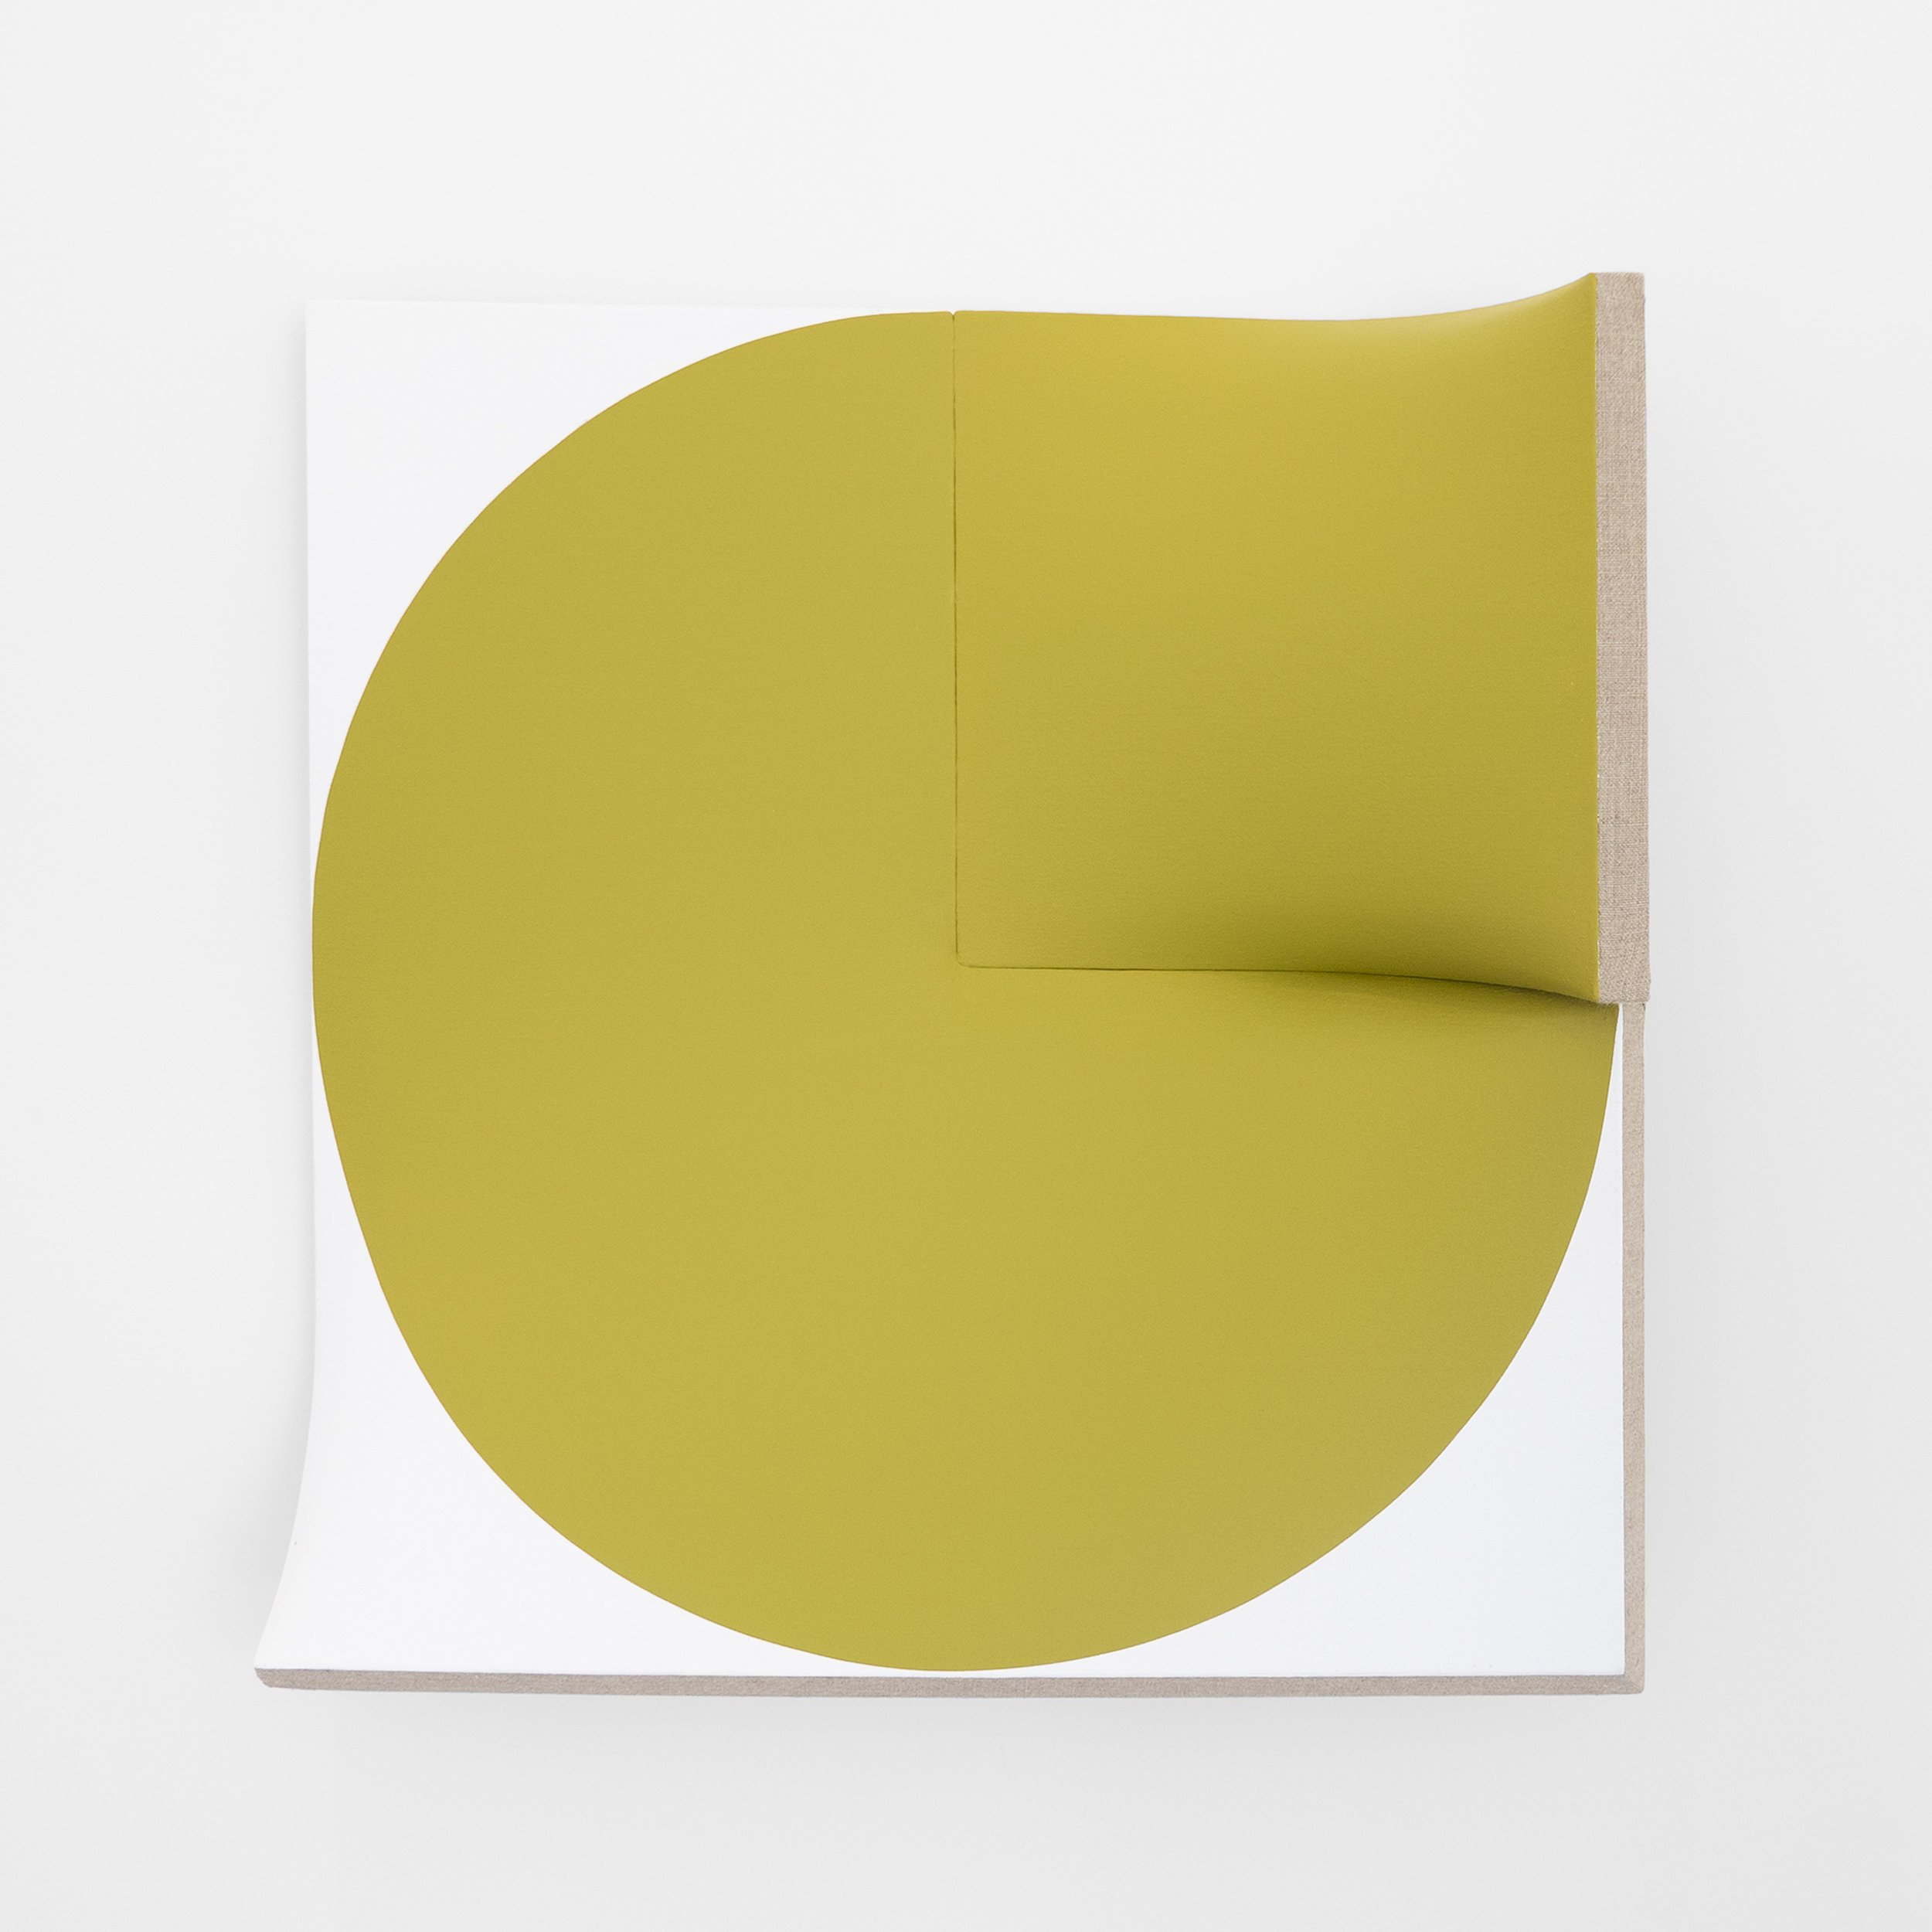 IMPROVED FLAT OUT POINTLESS CUT-OUT YELLOW GREEN